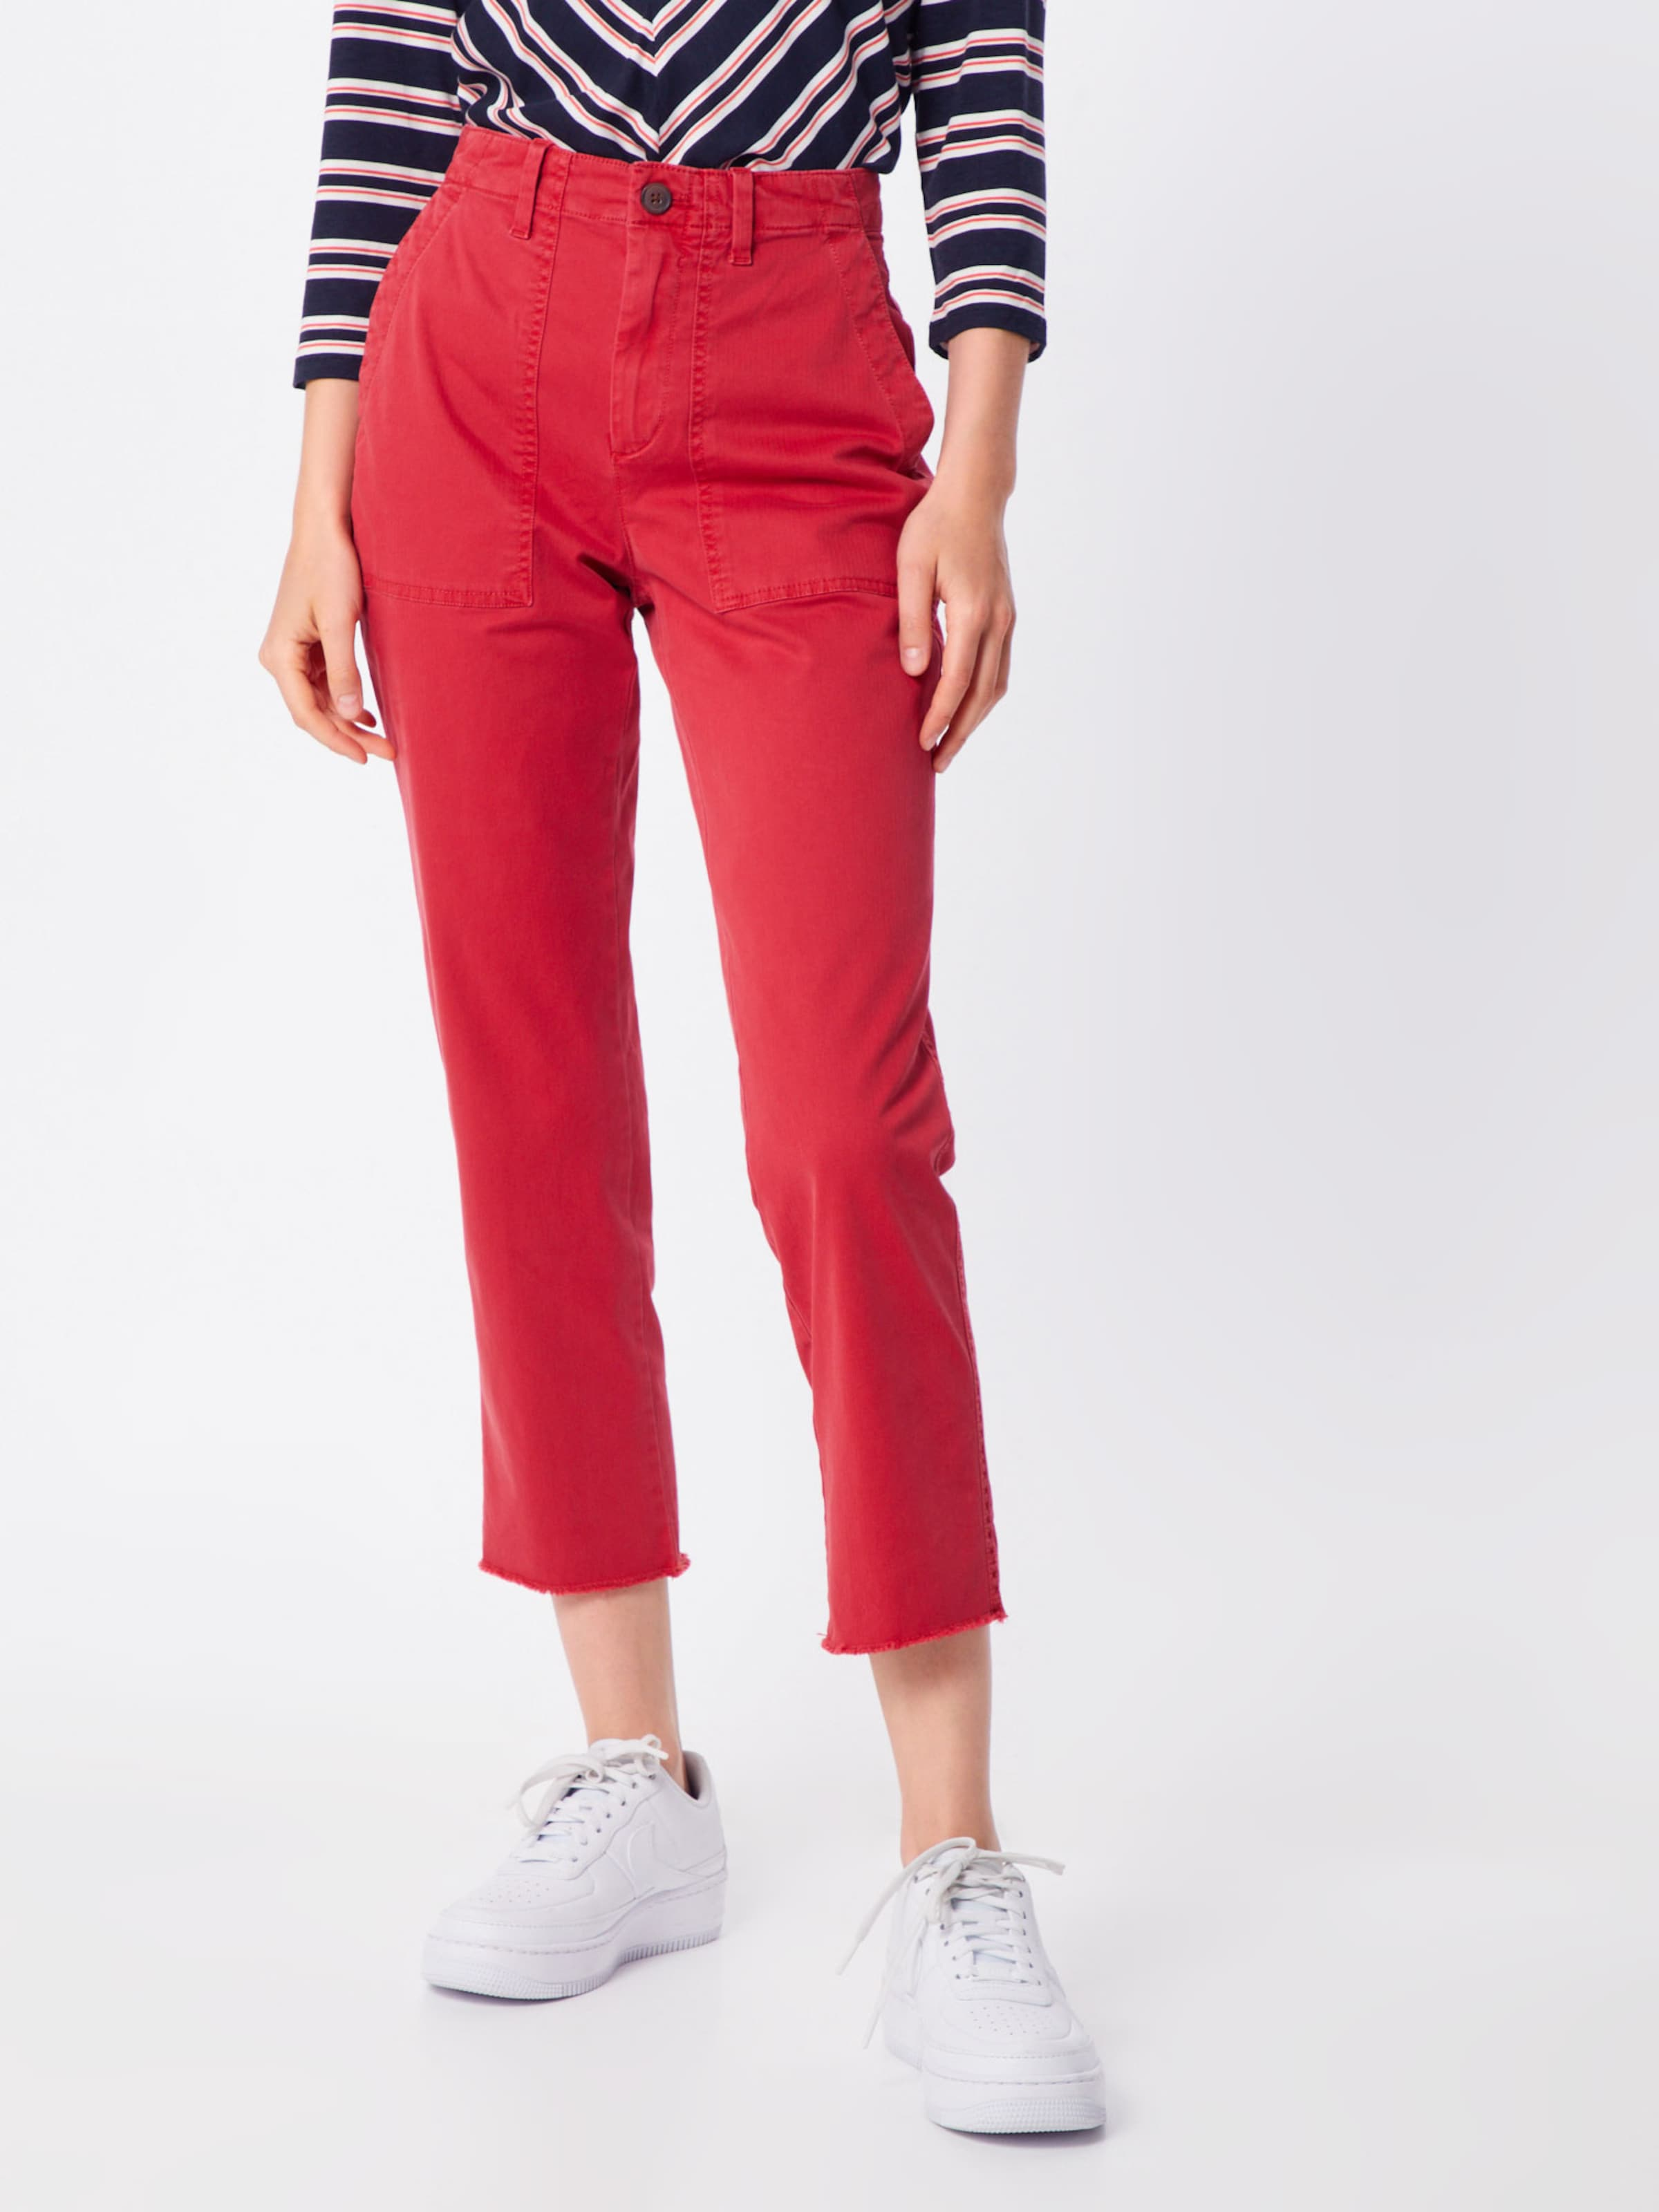 En Pantalon Fray' 'girlfriend Chino Utility Rouge Gap AcLq5j34R